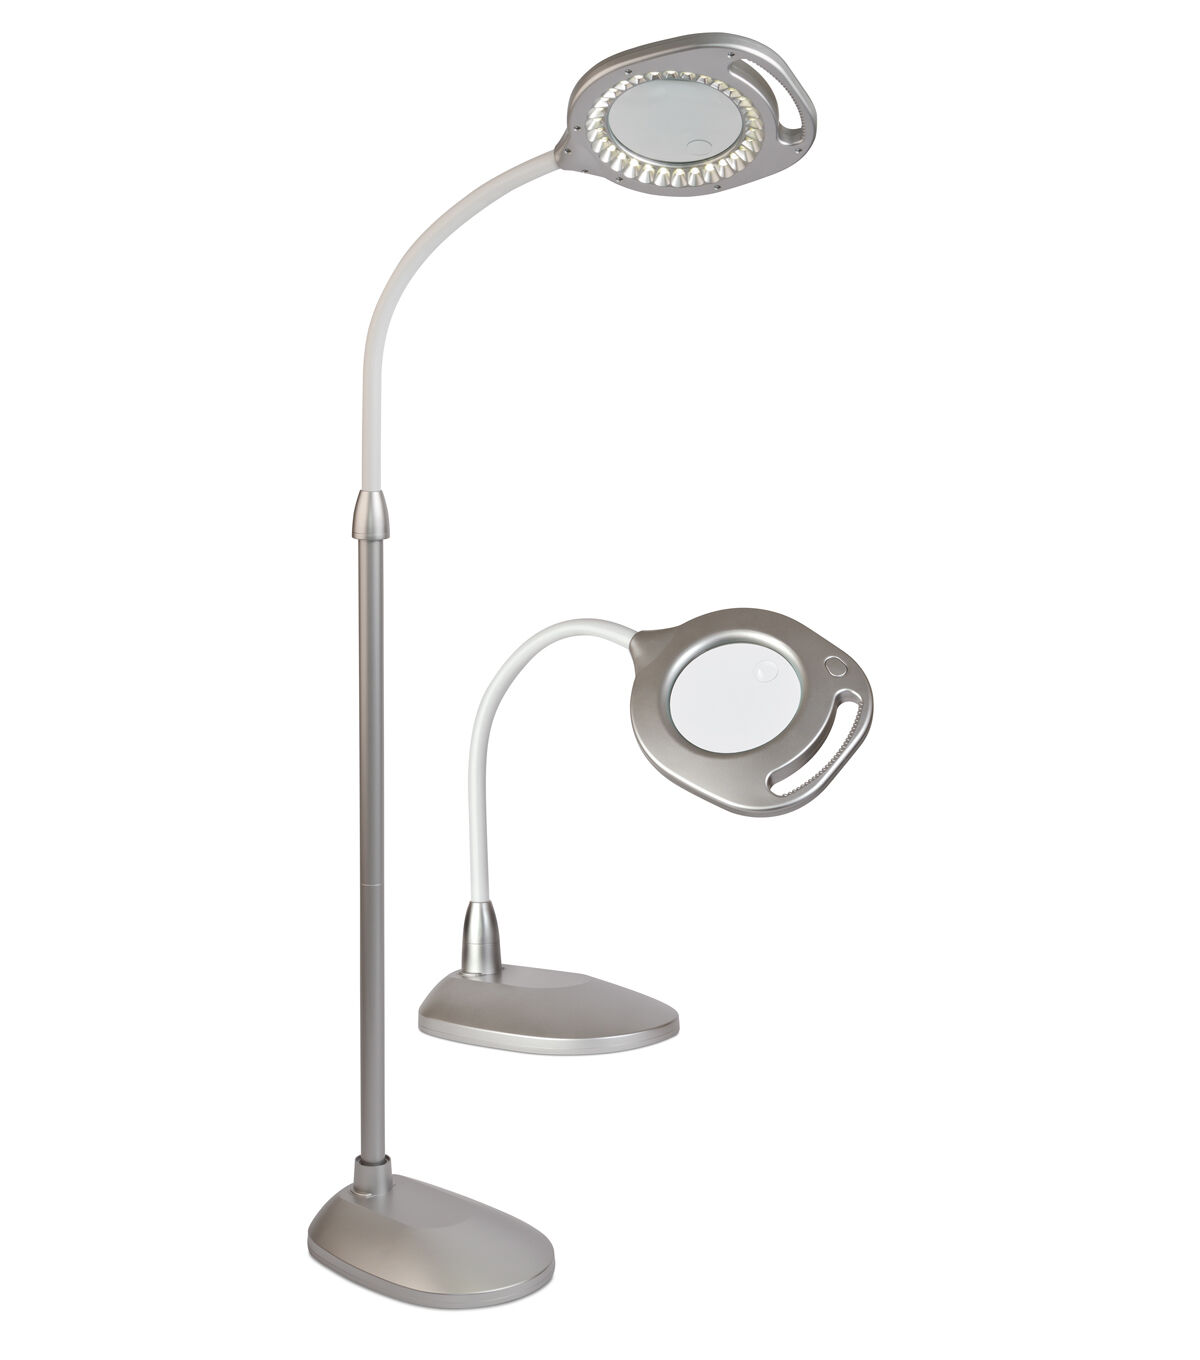 Ordinaire OttLite 2 In 1 LED Magnifier Floor U0026 Table Lamp Silver